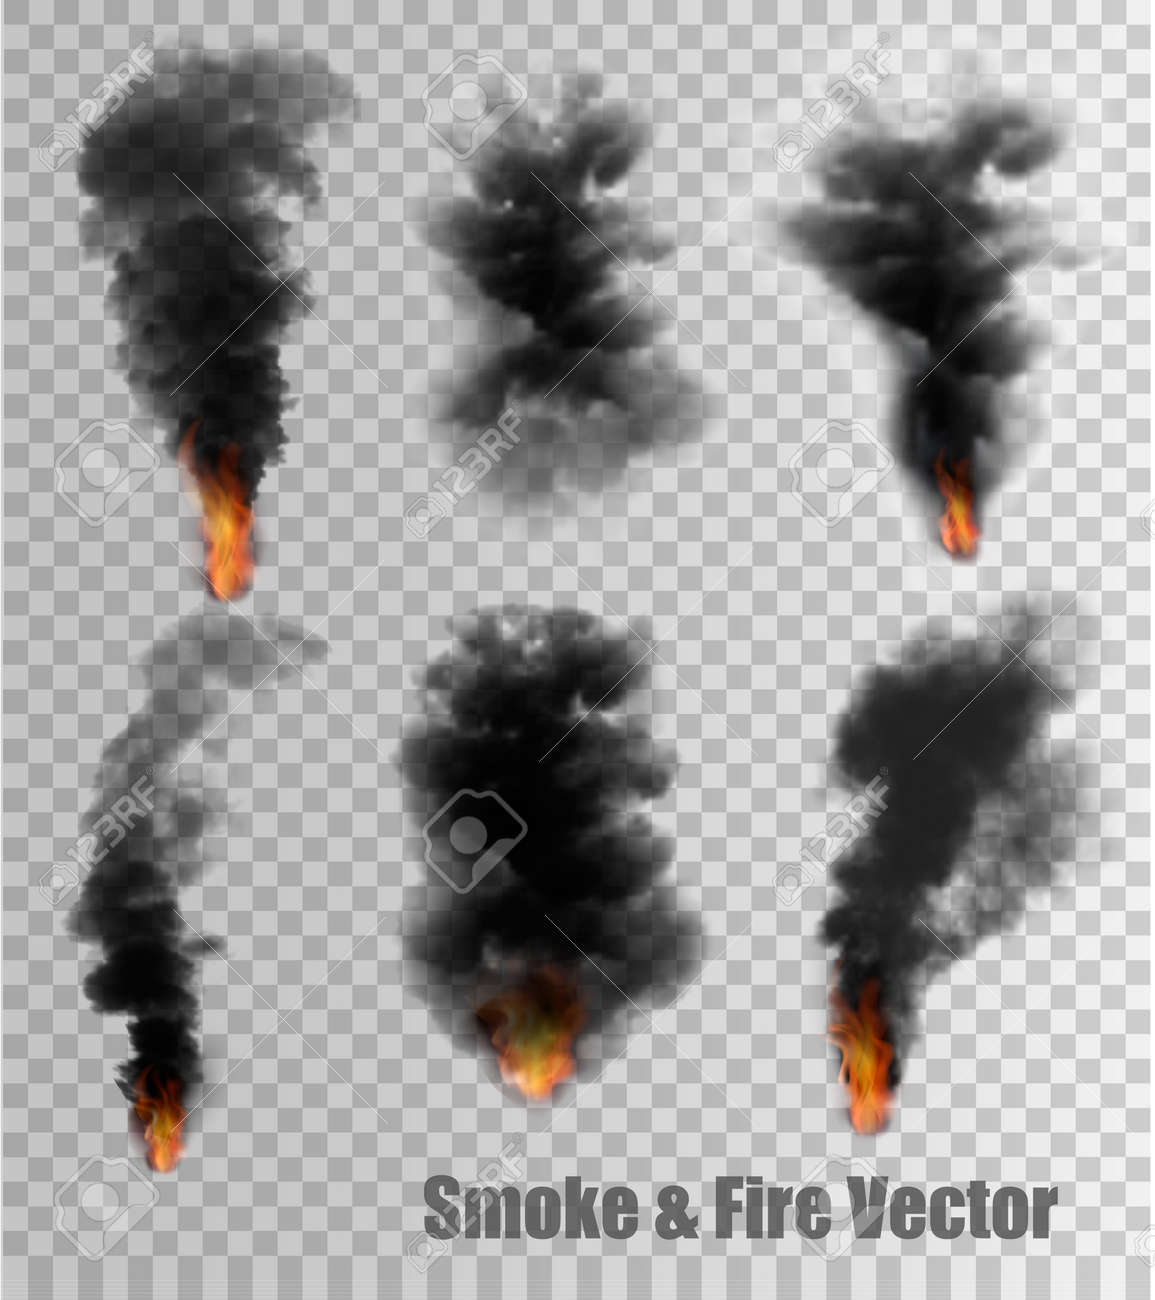 Black Smoke And Fire Vectors On Transparent Background Vector Royalty Free Cliparts Vectors And Stock Illustration Image 64437000